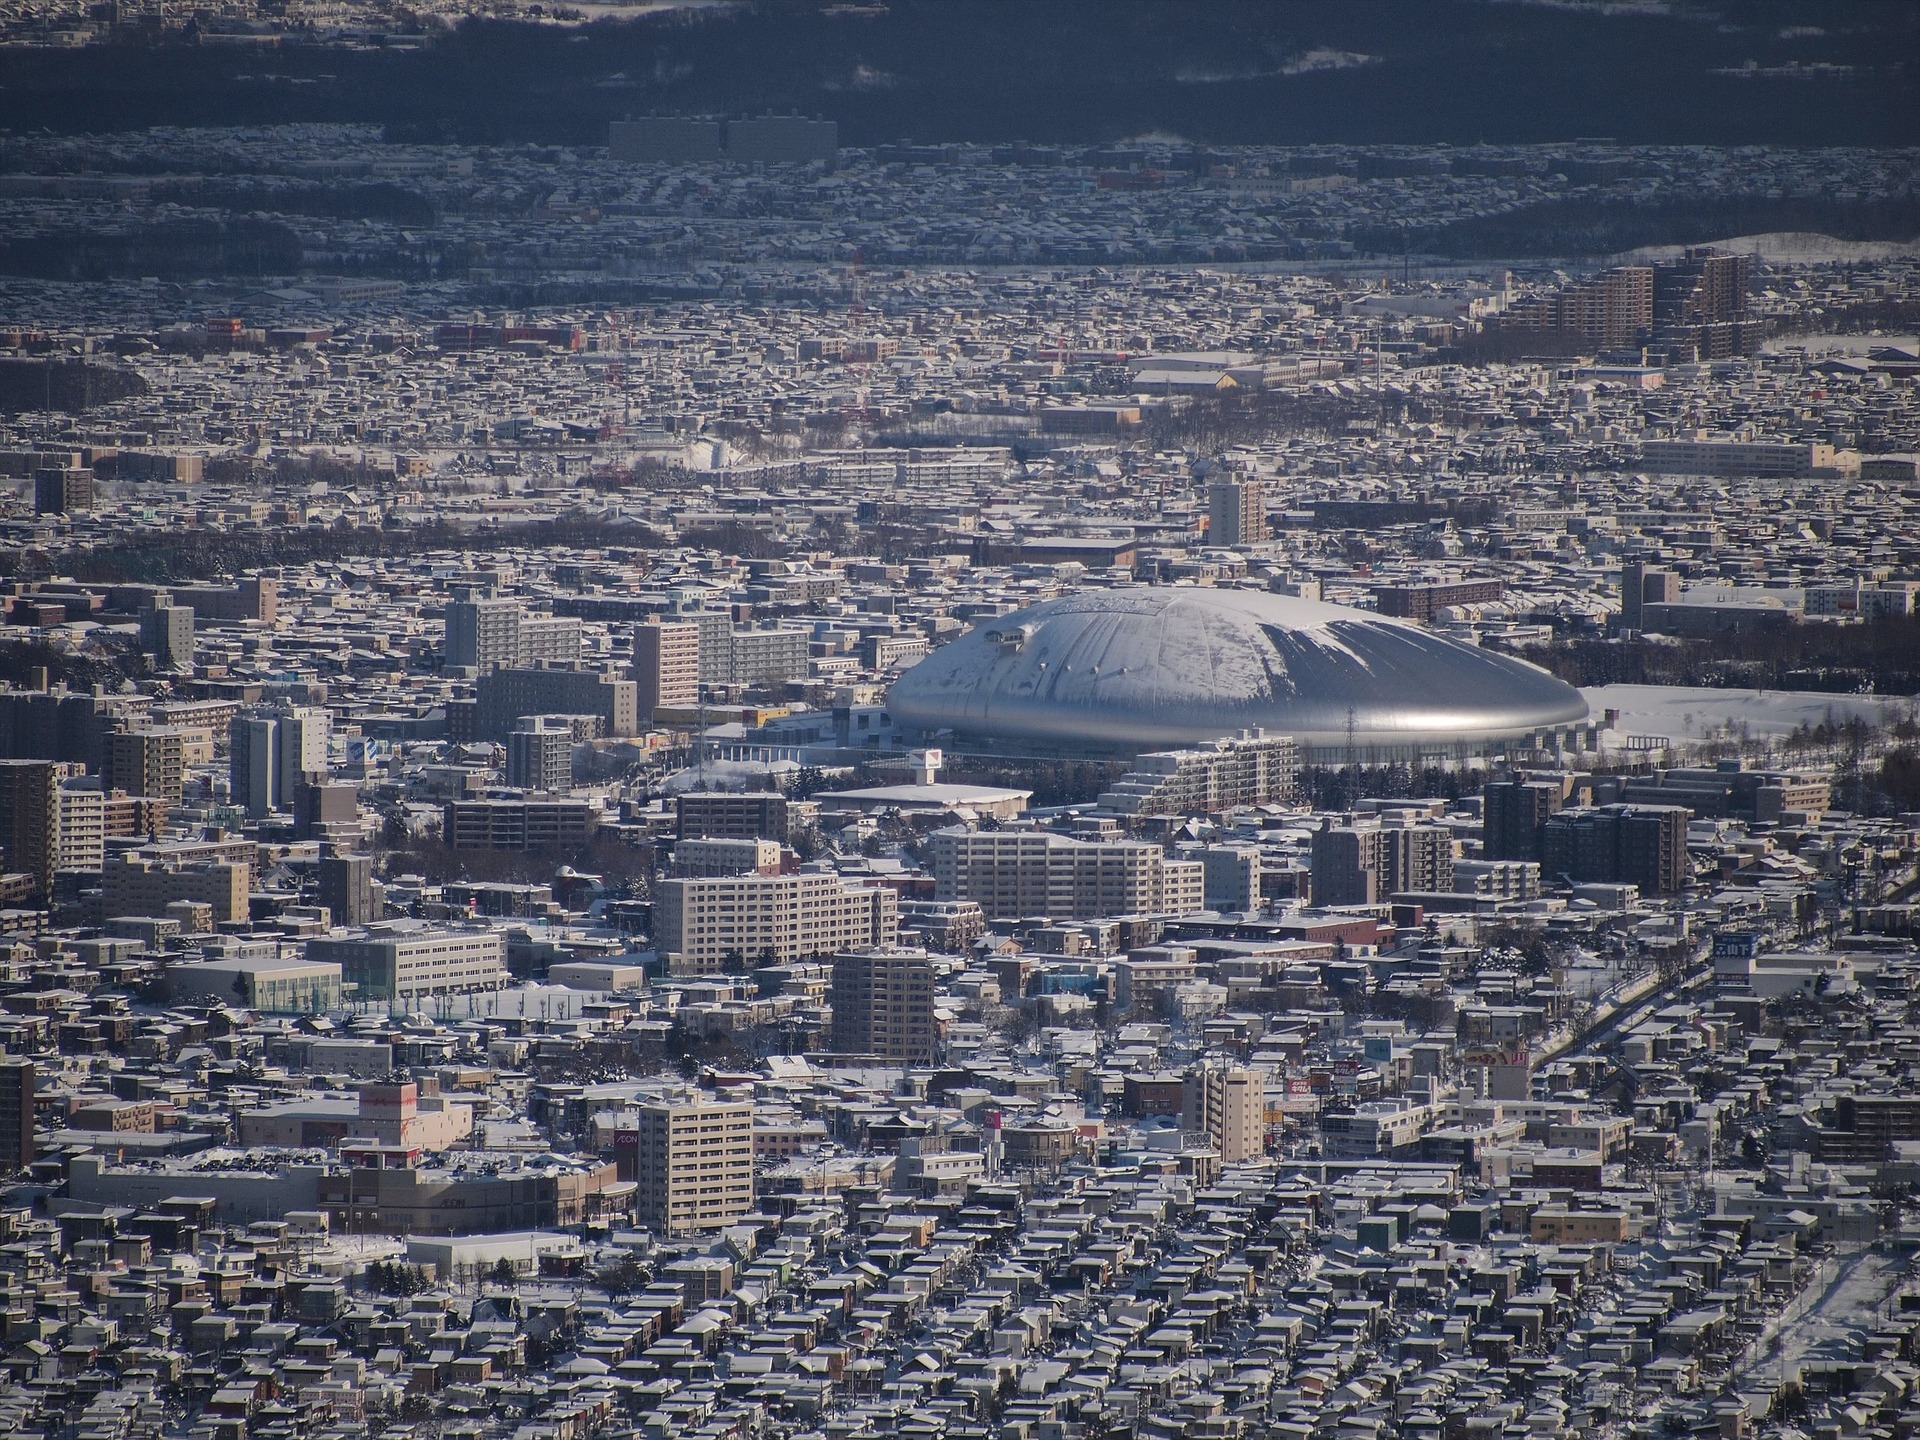 sapporo dome, home to two rwc 2019 matches